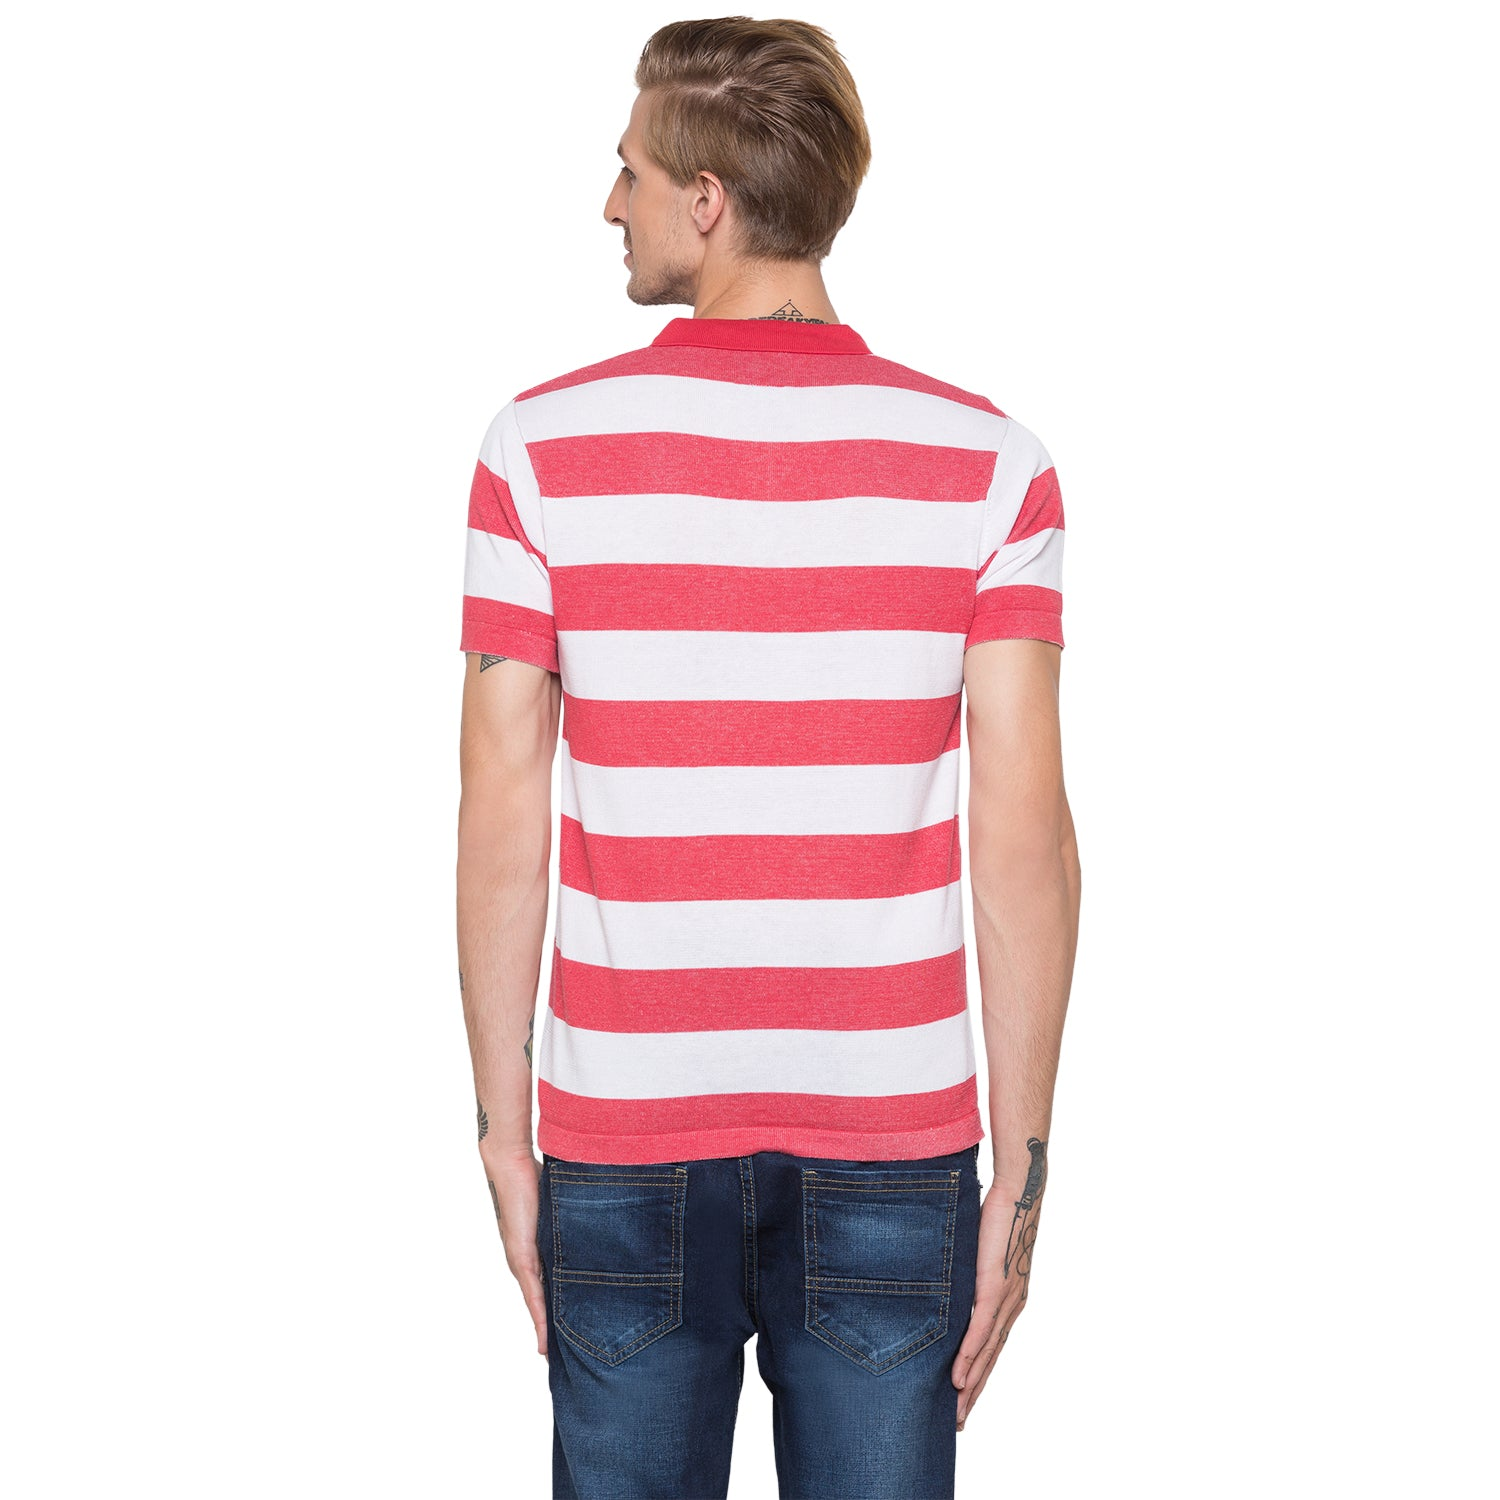 Globus White Striped Polo T-Shirt-3